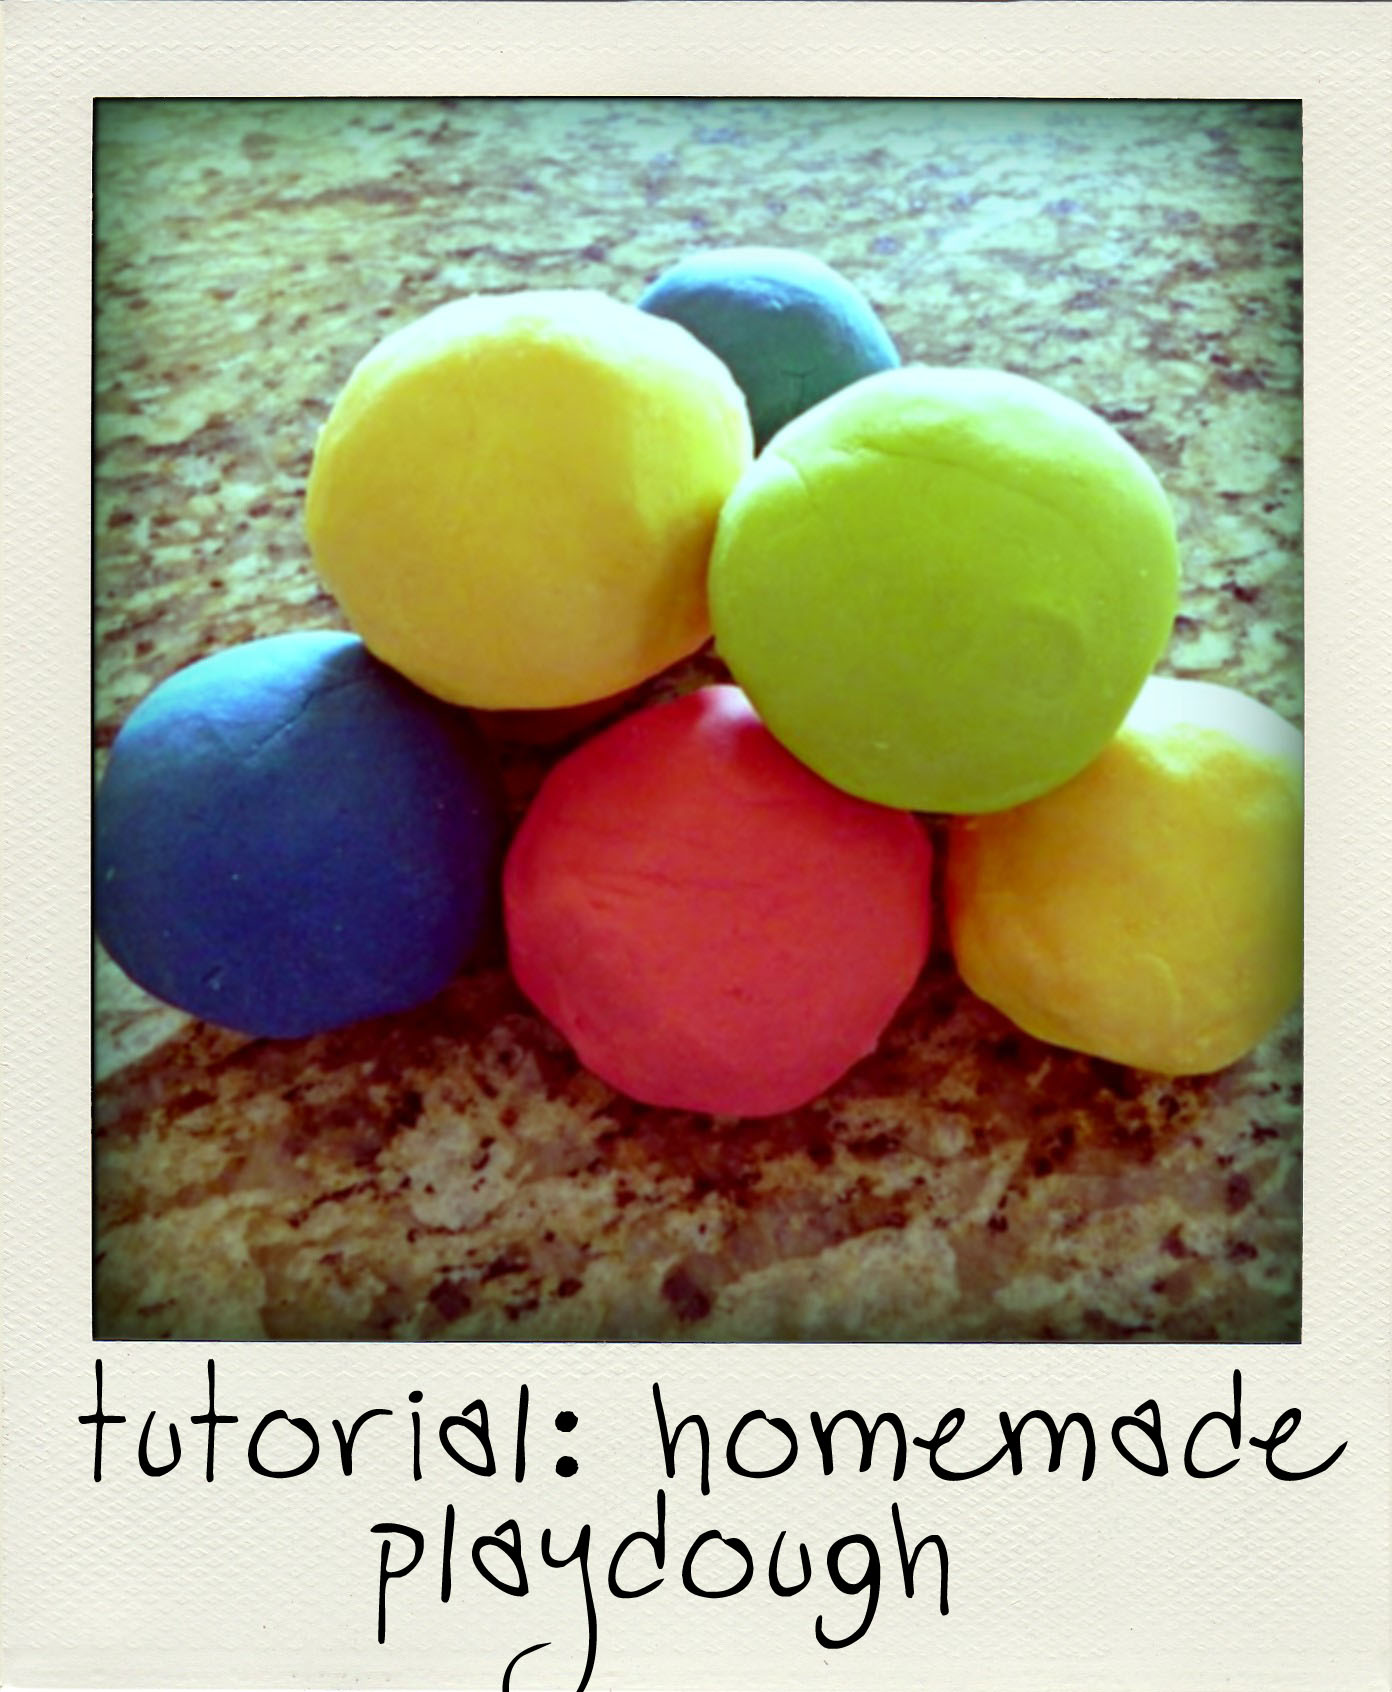 homemade playdough